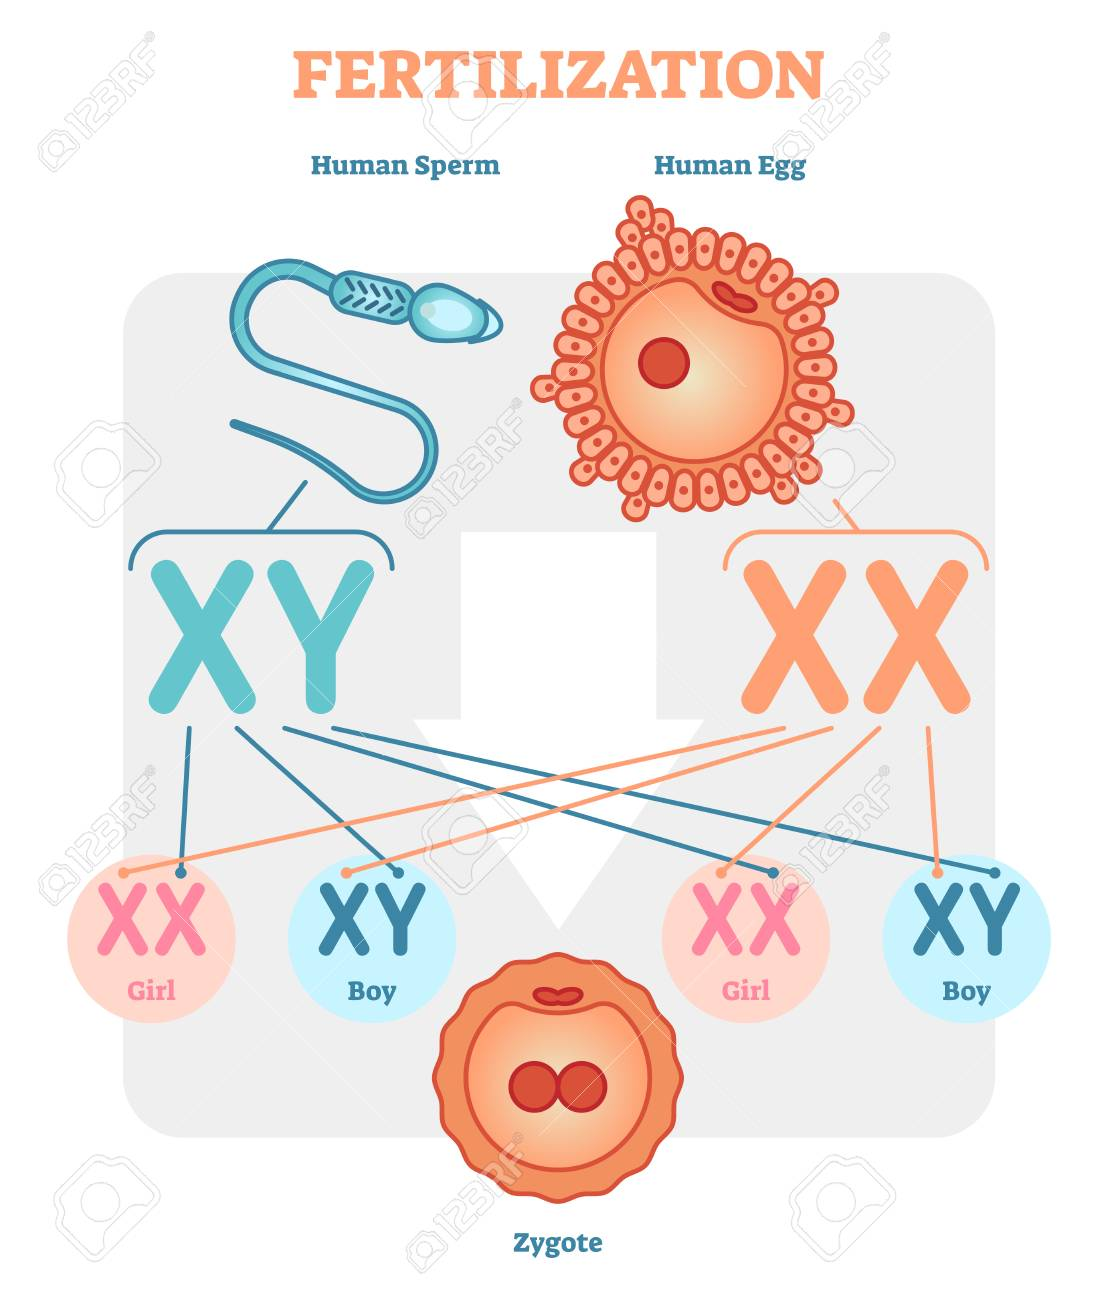 Fertilization Diagram With Human Sperm Human Egg And Zygote